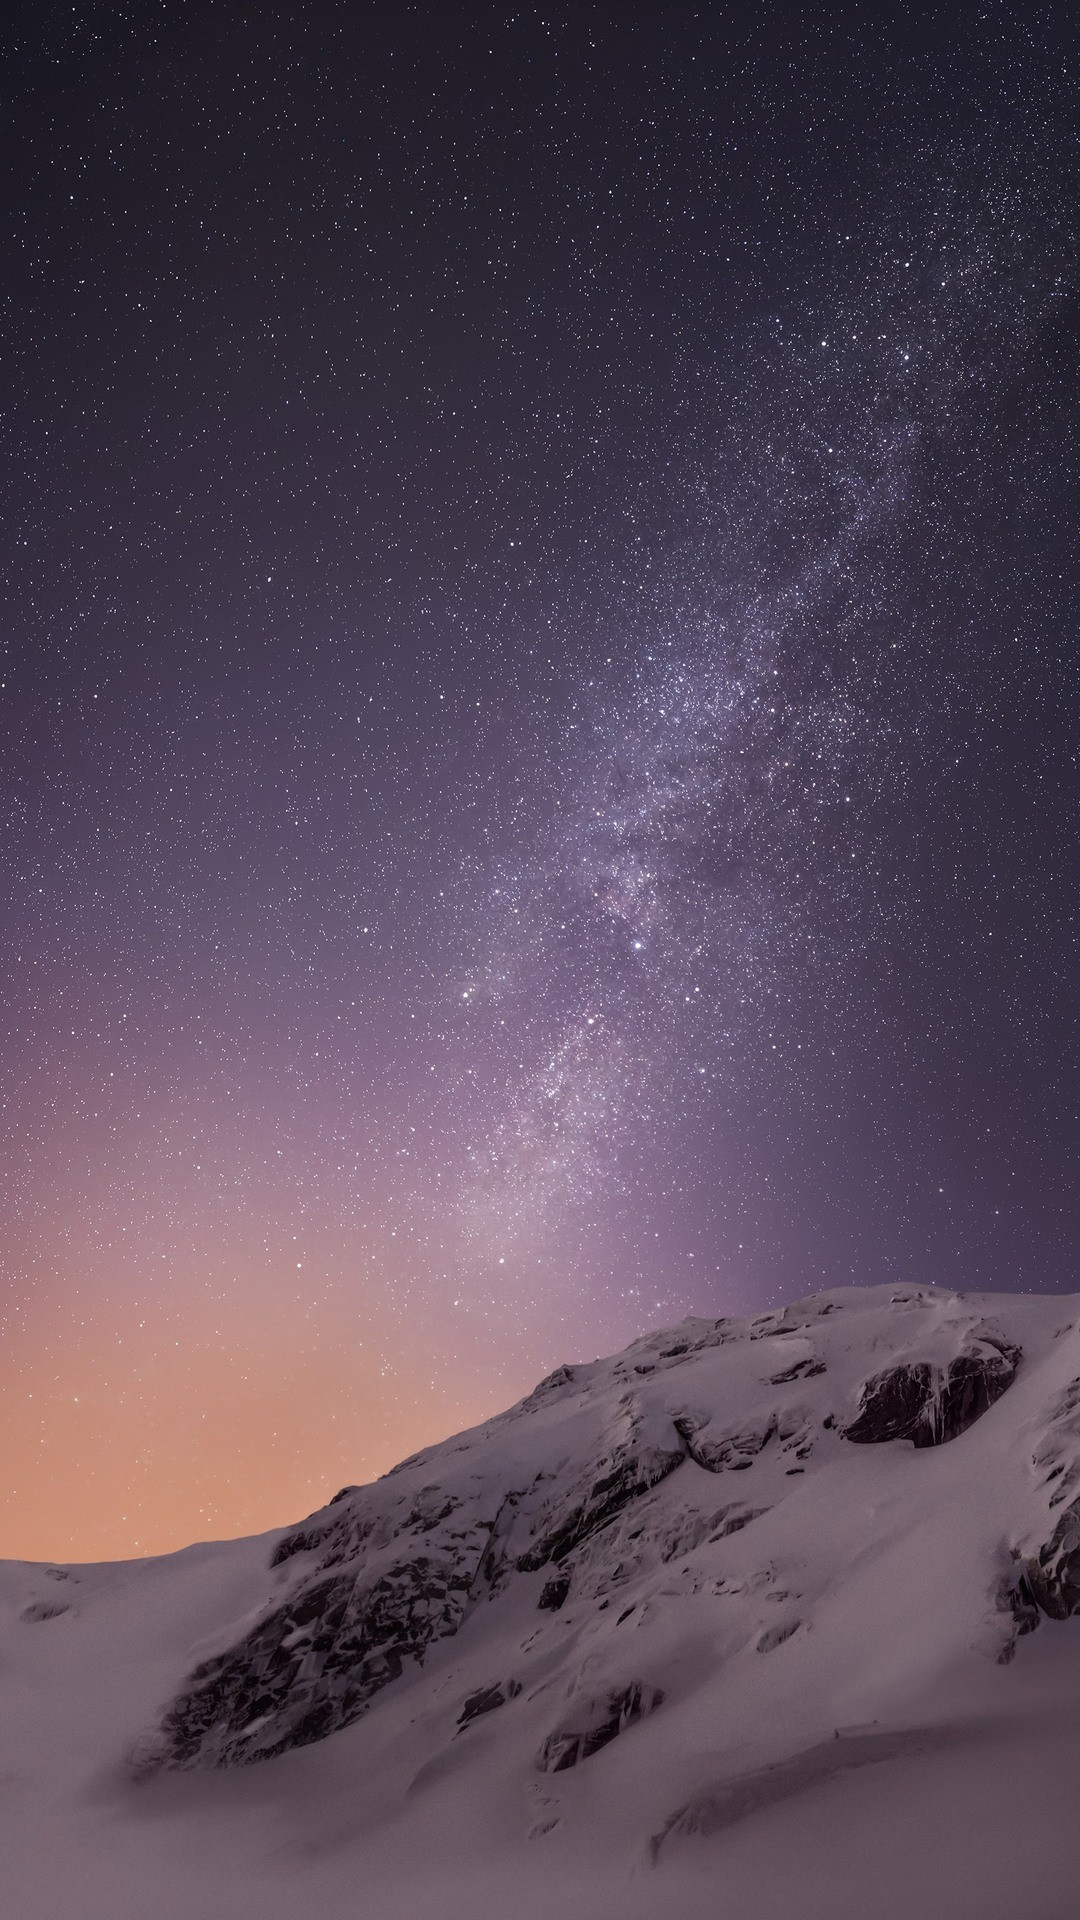 Mountains and stars vv wallpaper 1080x1920 for 1080 by 1920 wallpaper